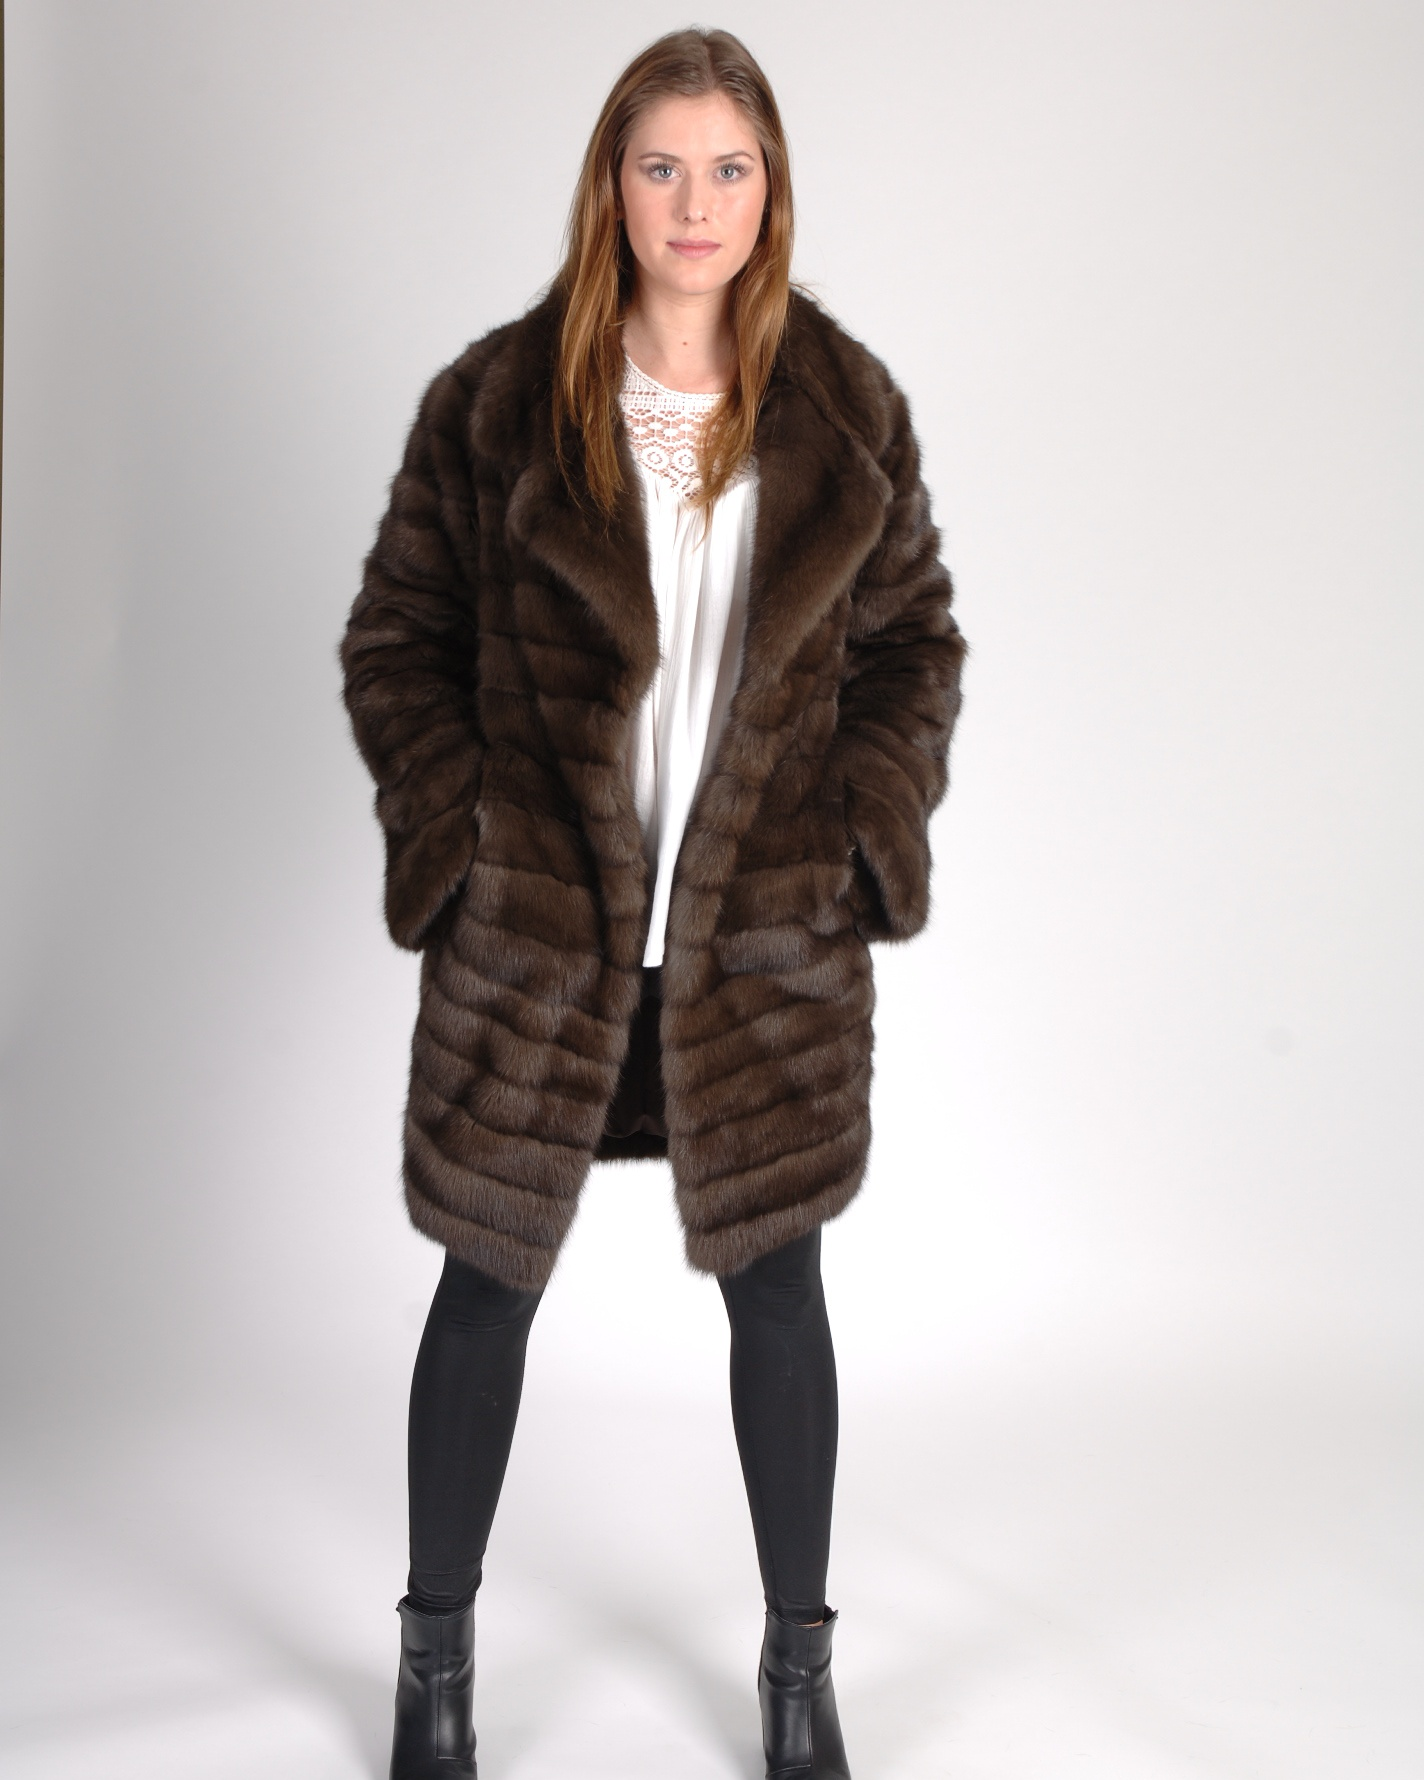 Saga Furs Auctions Home News